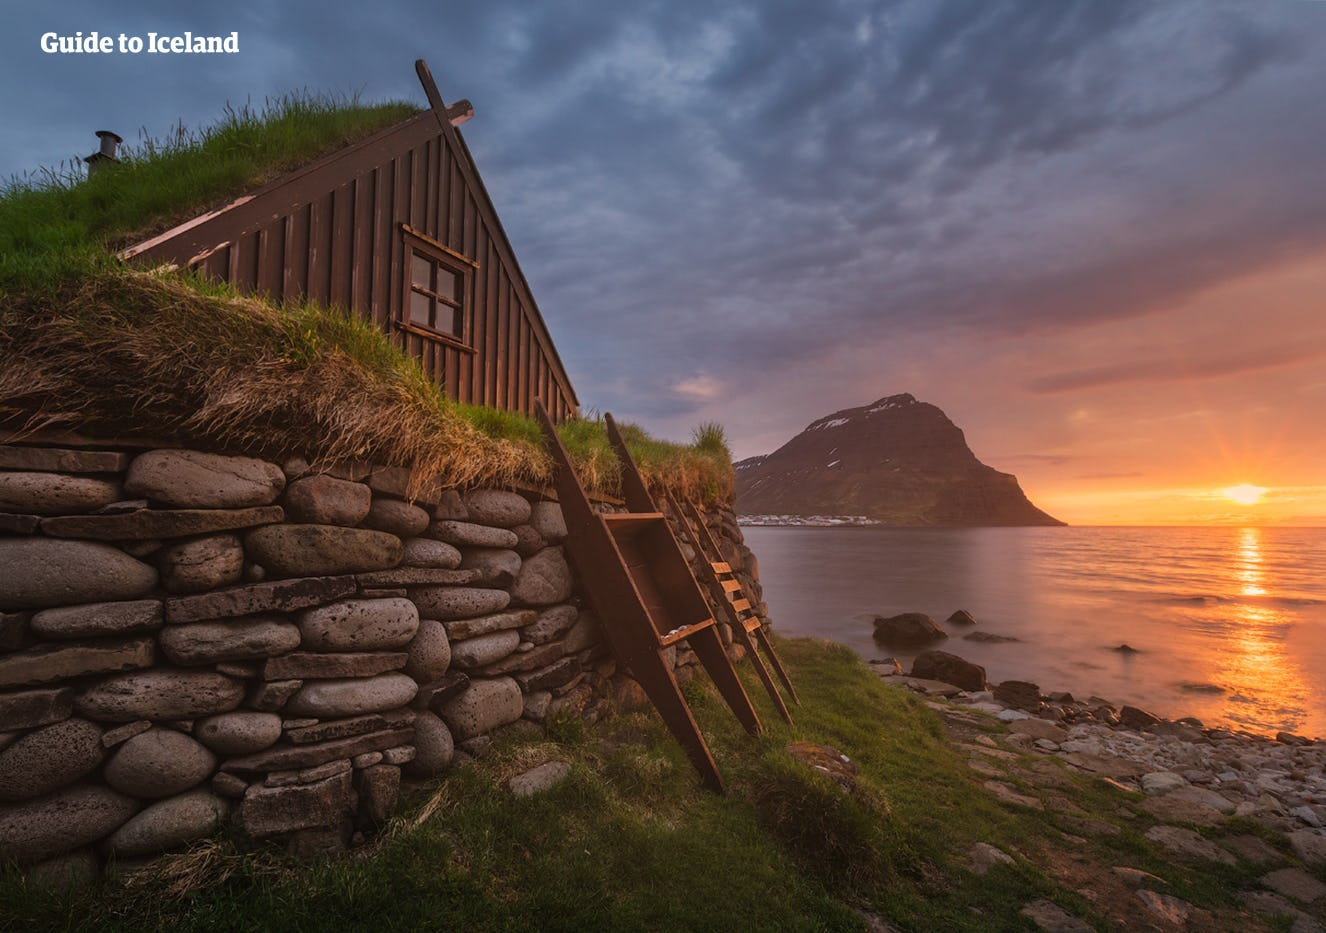 Idyllic, historic turf houses can be found across the Westfjords and Snæfellsnes Peninsula; this one is pictured in summer.